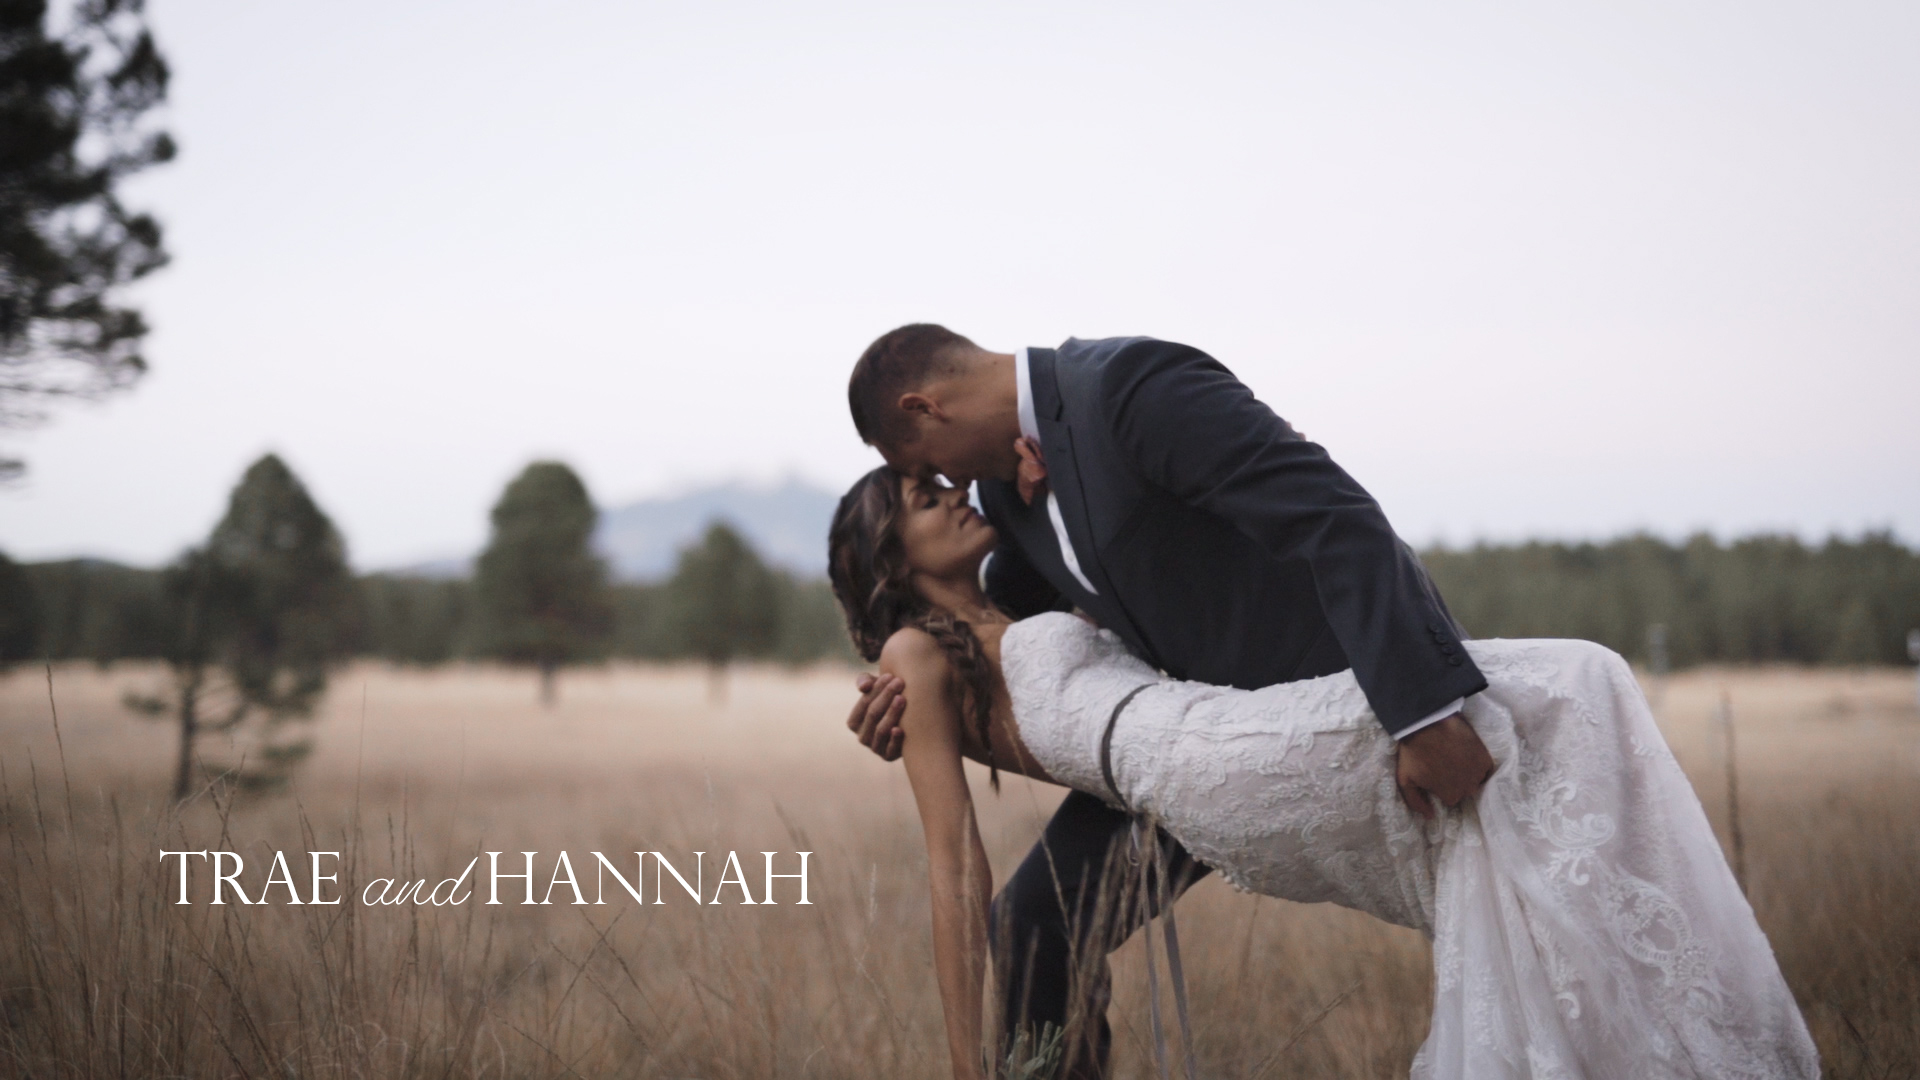 Trae + Hannah | Flagstaff, Arizona | The Arboretum Flagstaff